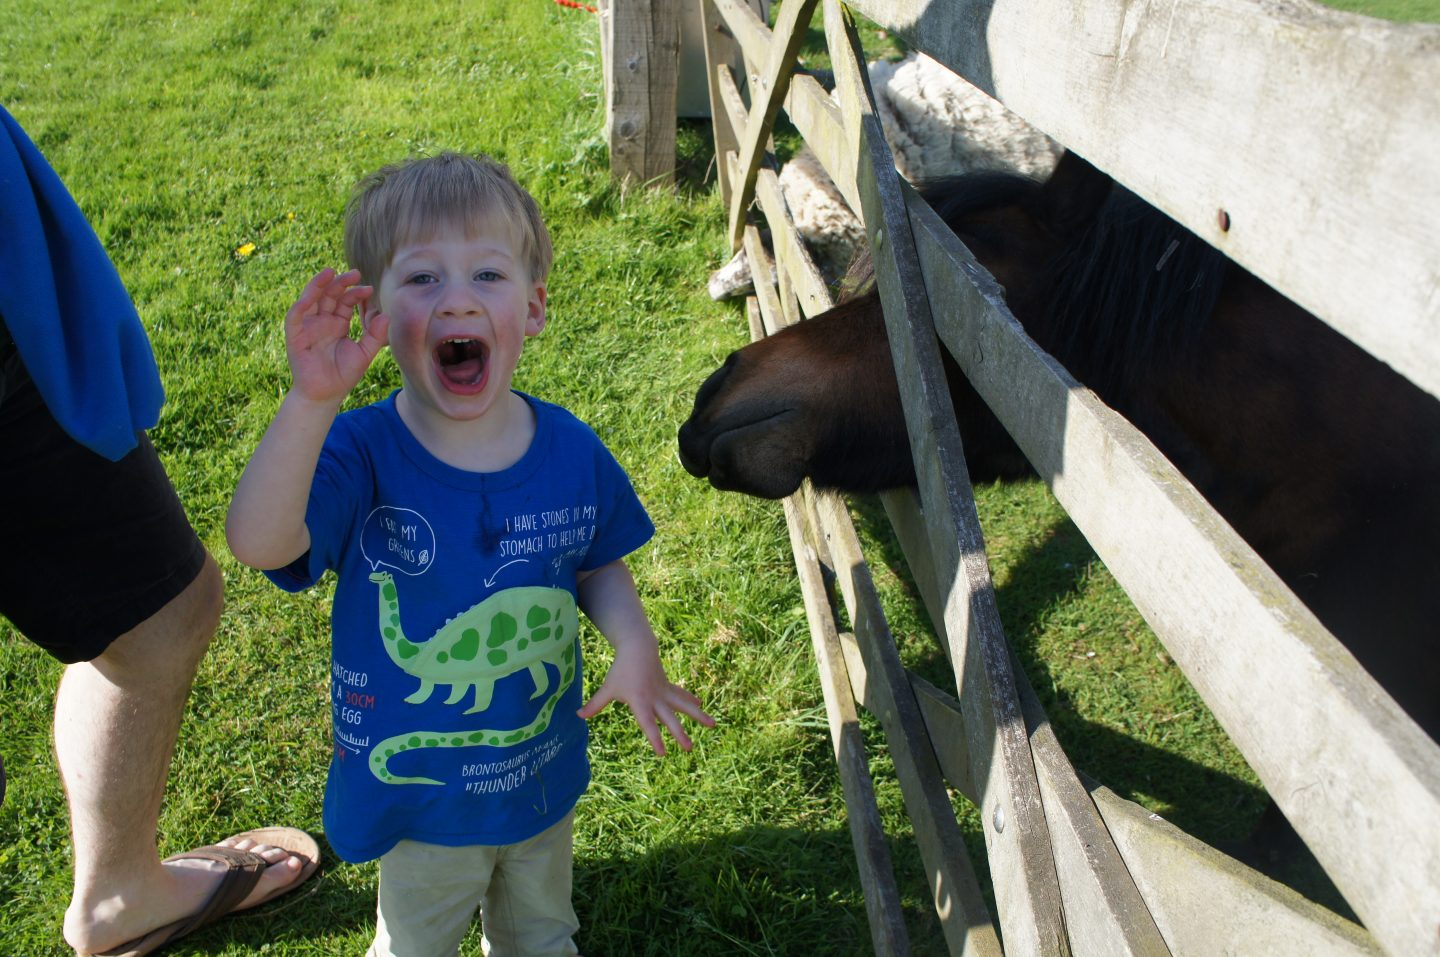 Farm feeding time